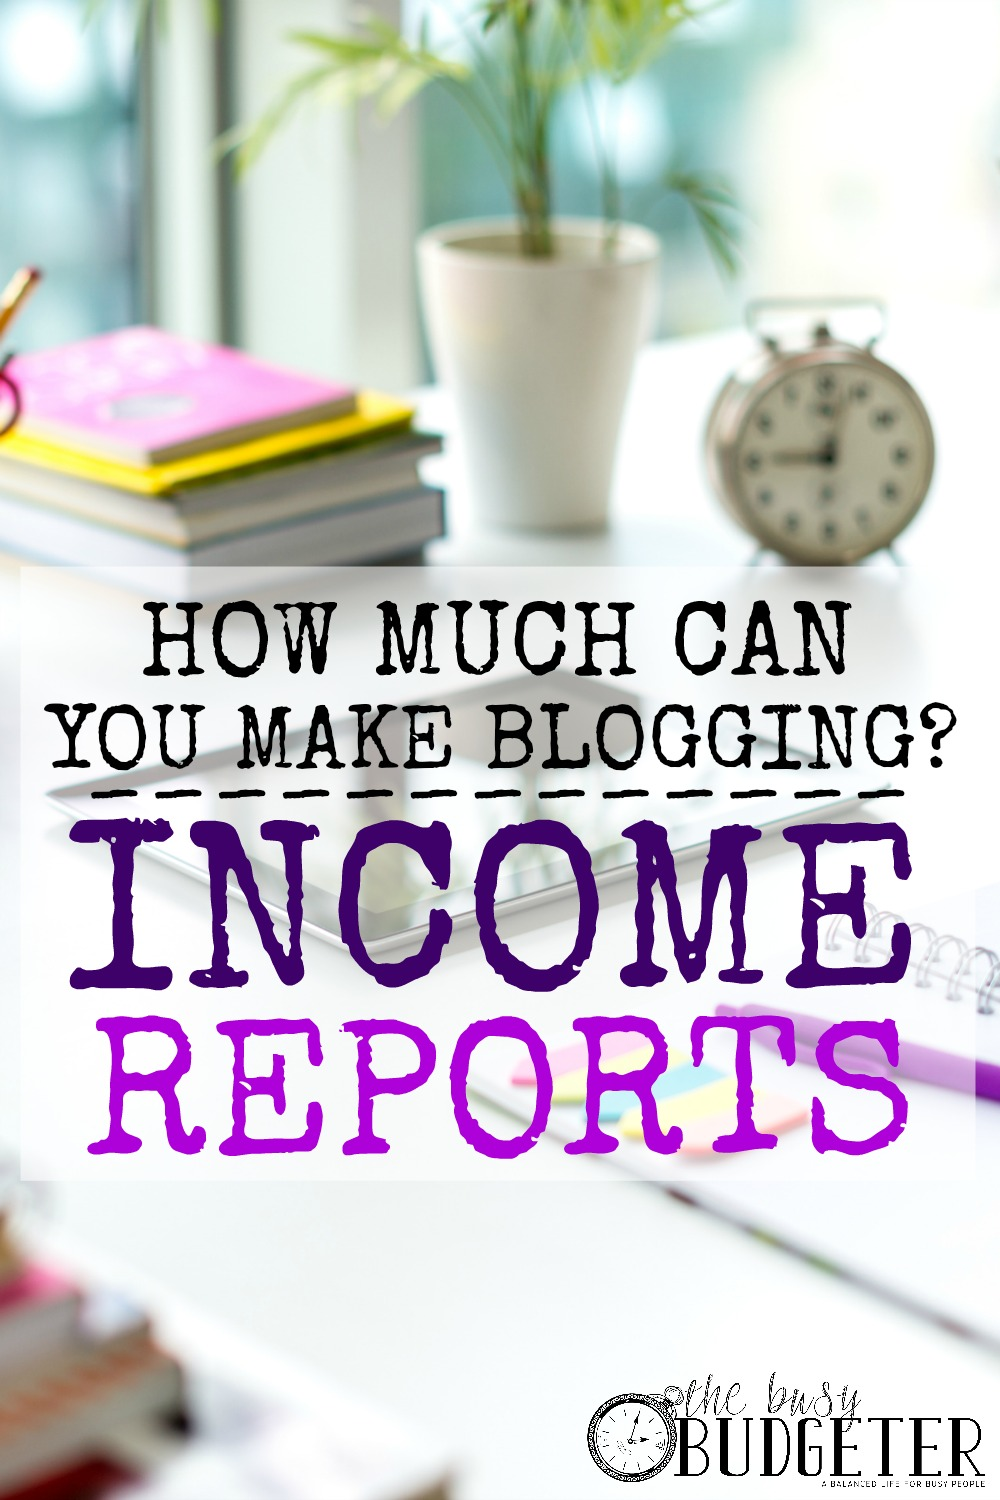 Blog income reports- How much money can you make blogging. I love seeing how her blog income changed from the beginning. She makes in a month blogging what I make in a year and she only started last year!!